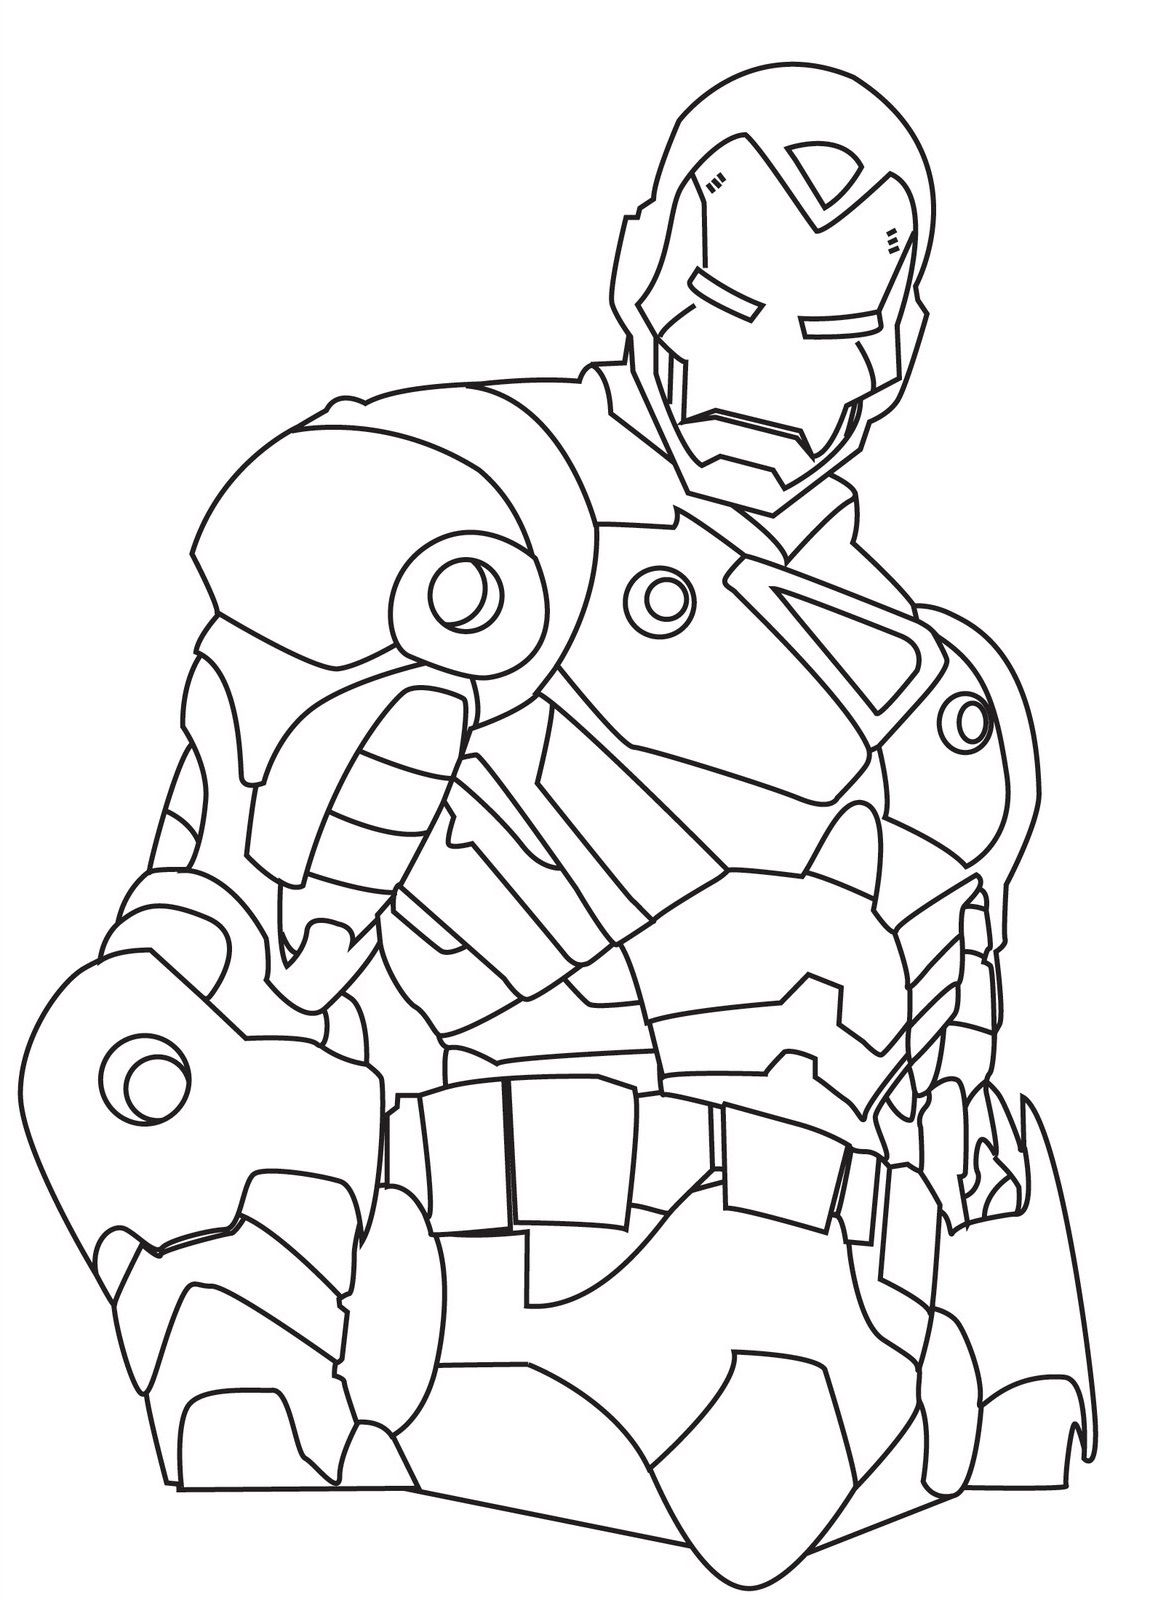 Iron Man Coloring Pages | Unicorn coloring pages, Coloring ...